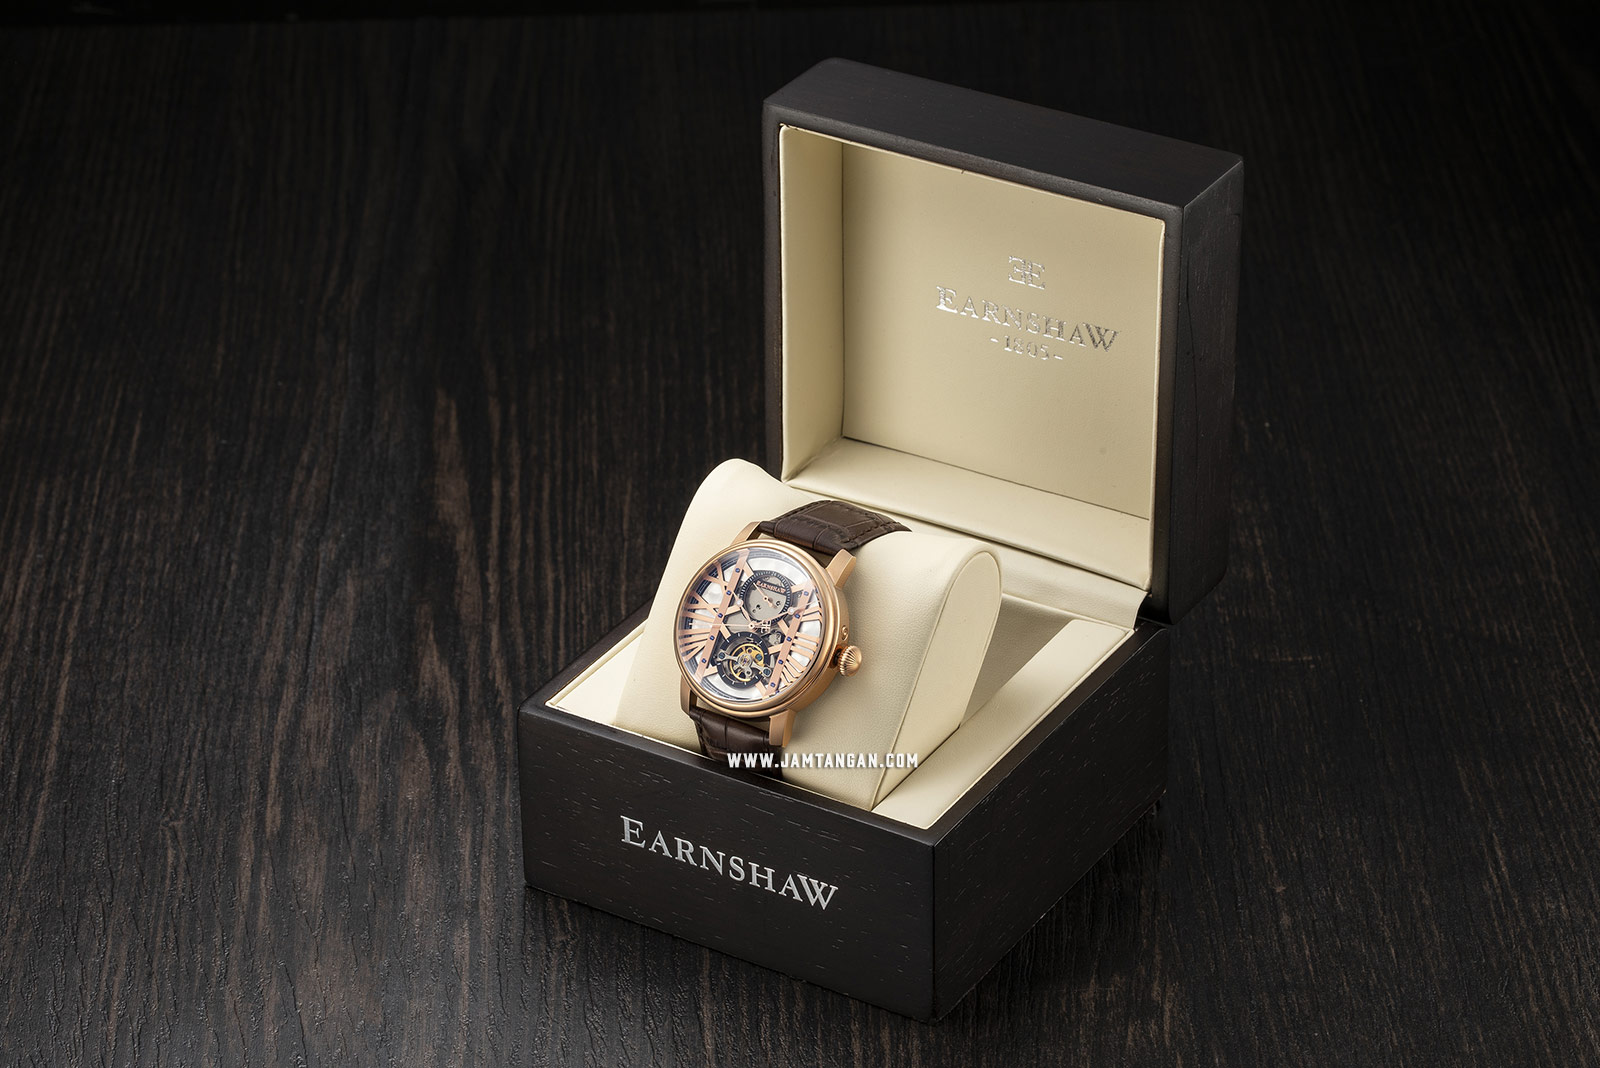 Thomas Earnshaw ES-8095-03 Westminster Automatic Open Heart Dial Brown Leather Strap Machtwatch